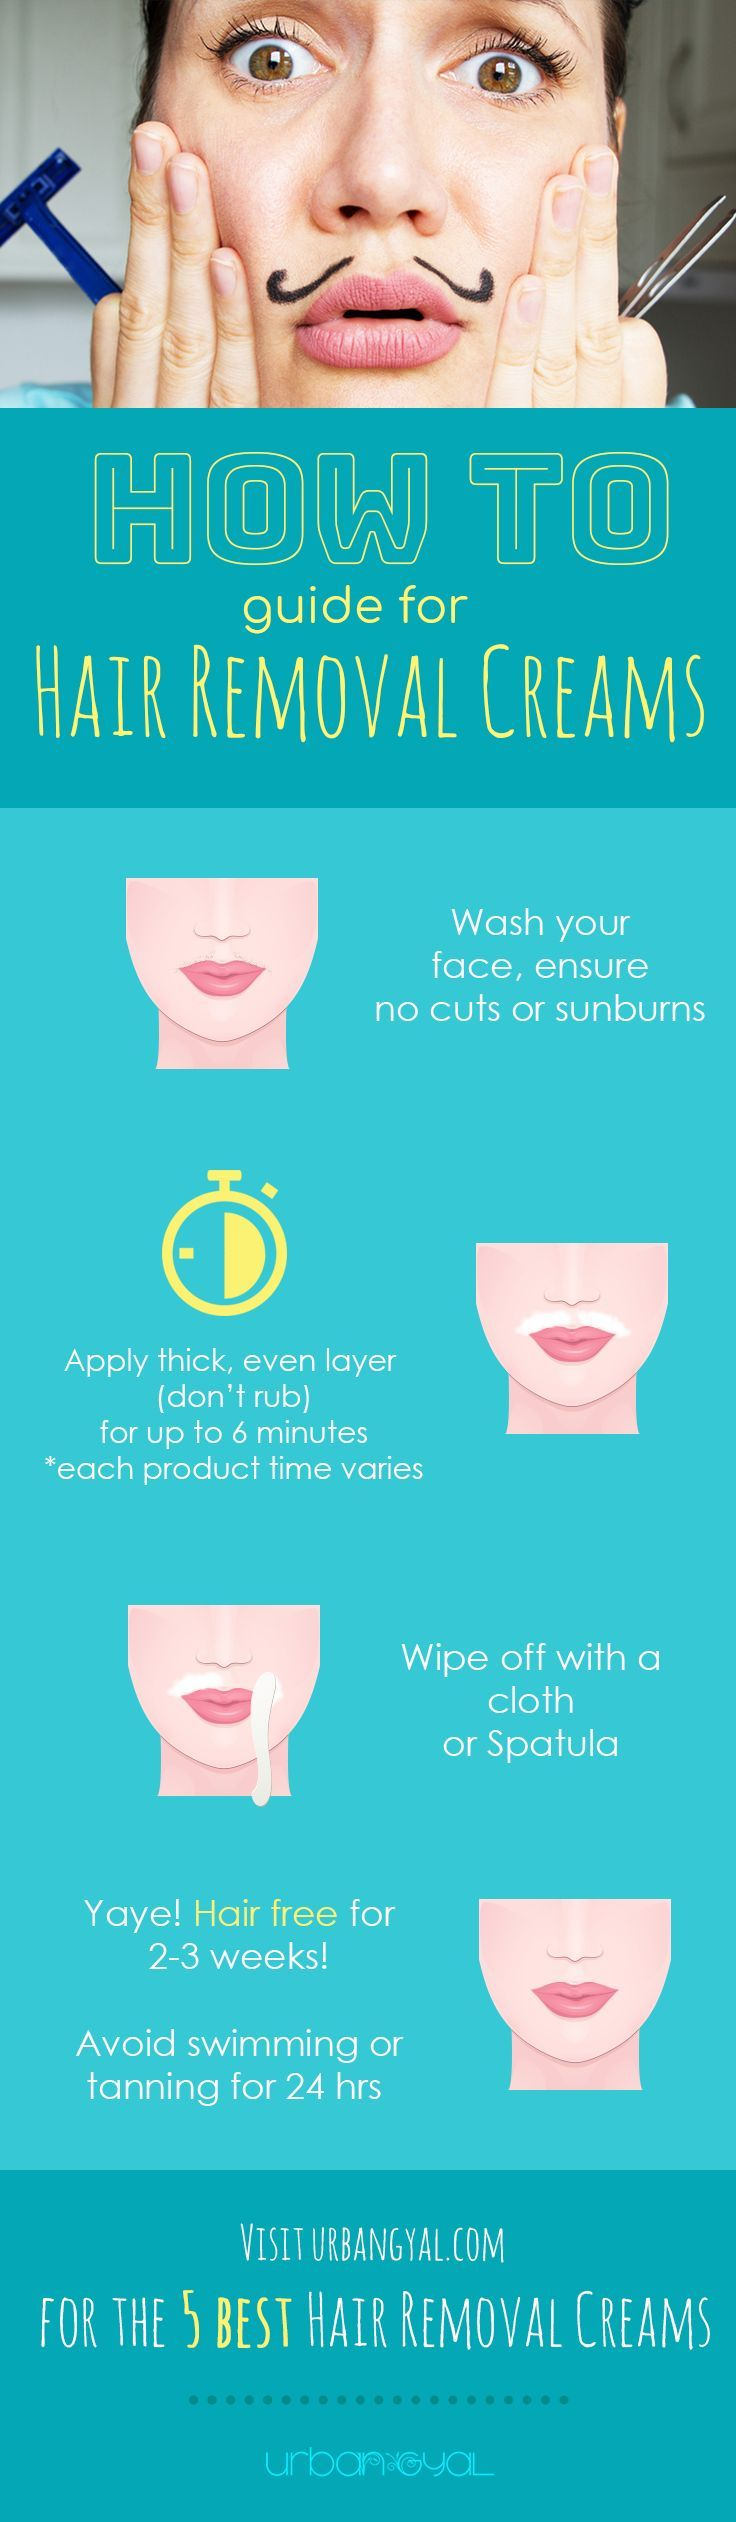 How to Apply Hair Removal Creams to painlessly remove facial hair in a matter of minutes!  Facial Hair has officially overstayed its welcome and time to go!